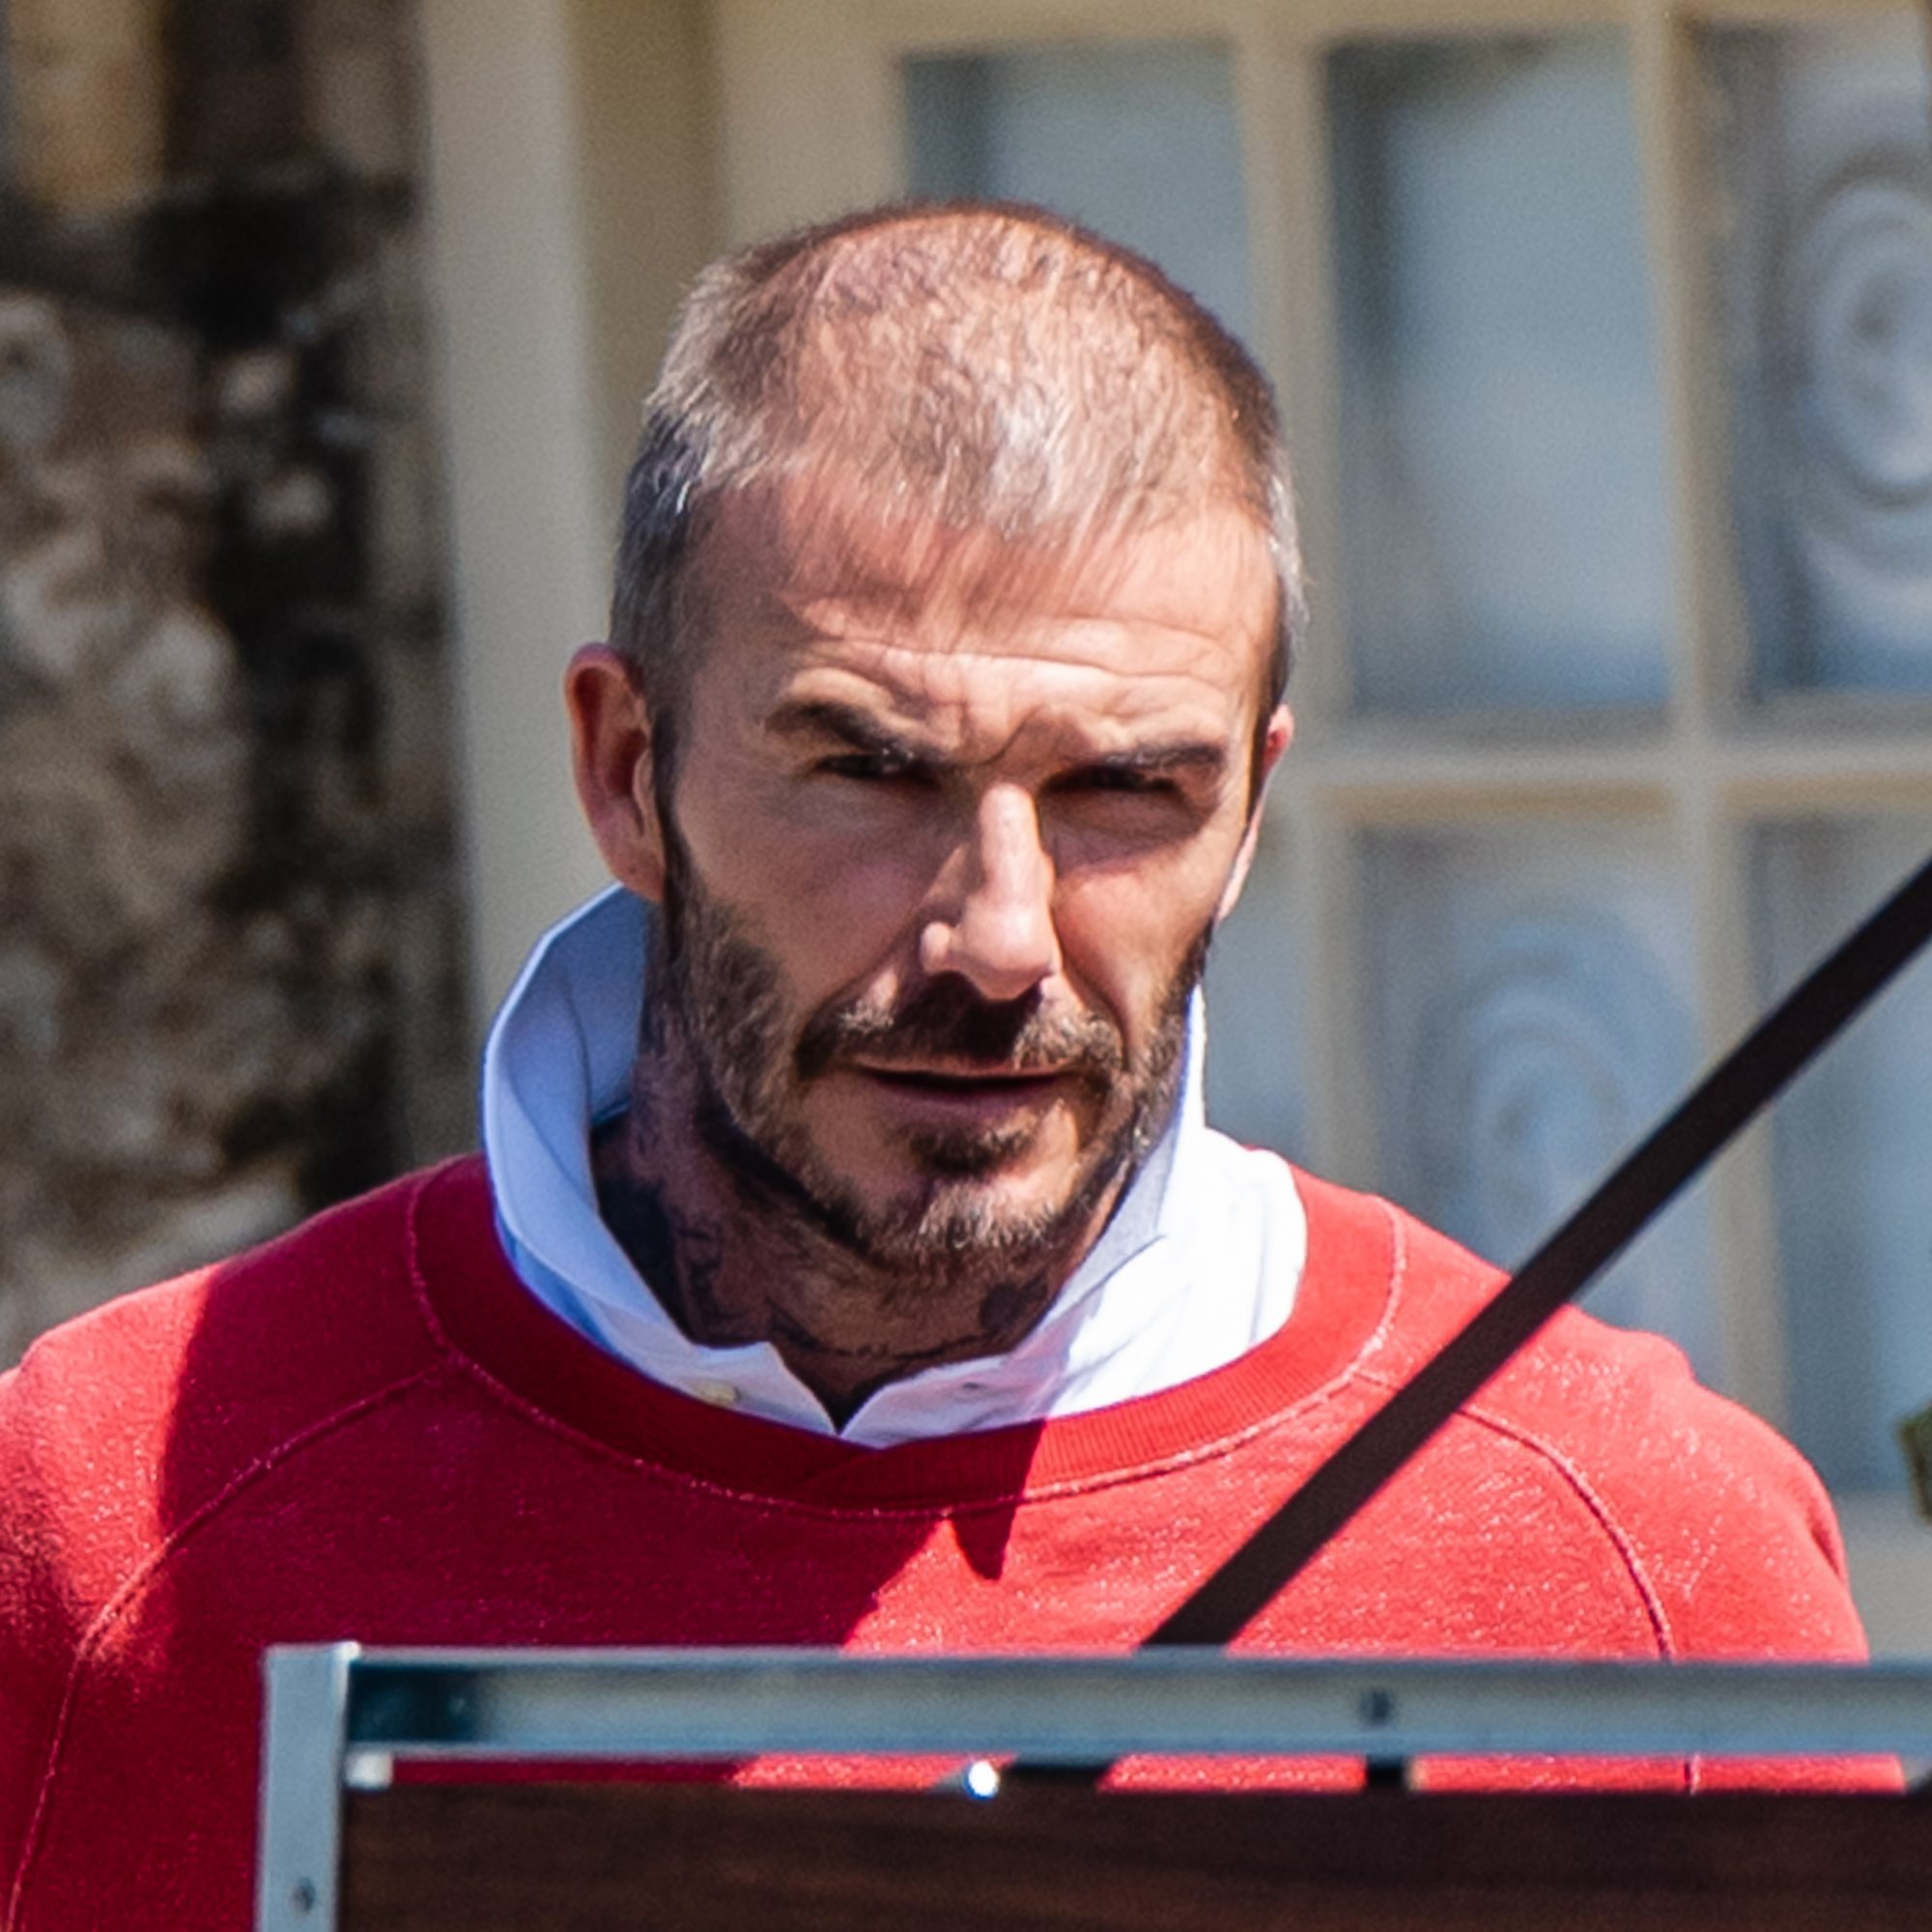 David and Harper Beckham spotted shopping in Burford 16 miles from their home in Great Tew during lockdown. David Beckham shows off Bald Patch as he goes shopping with daughter Harper,